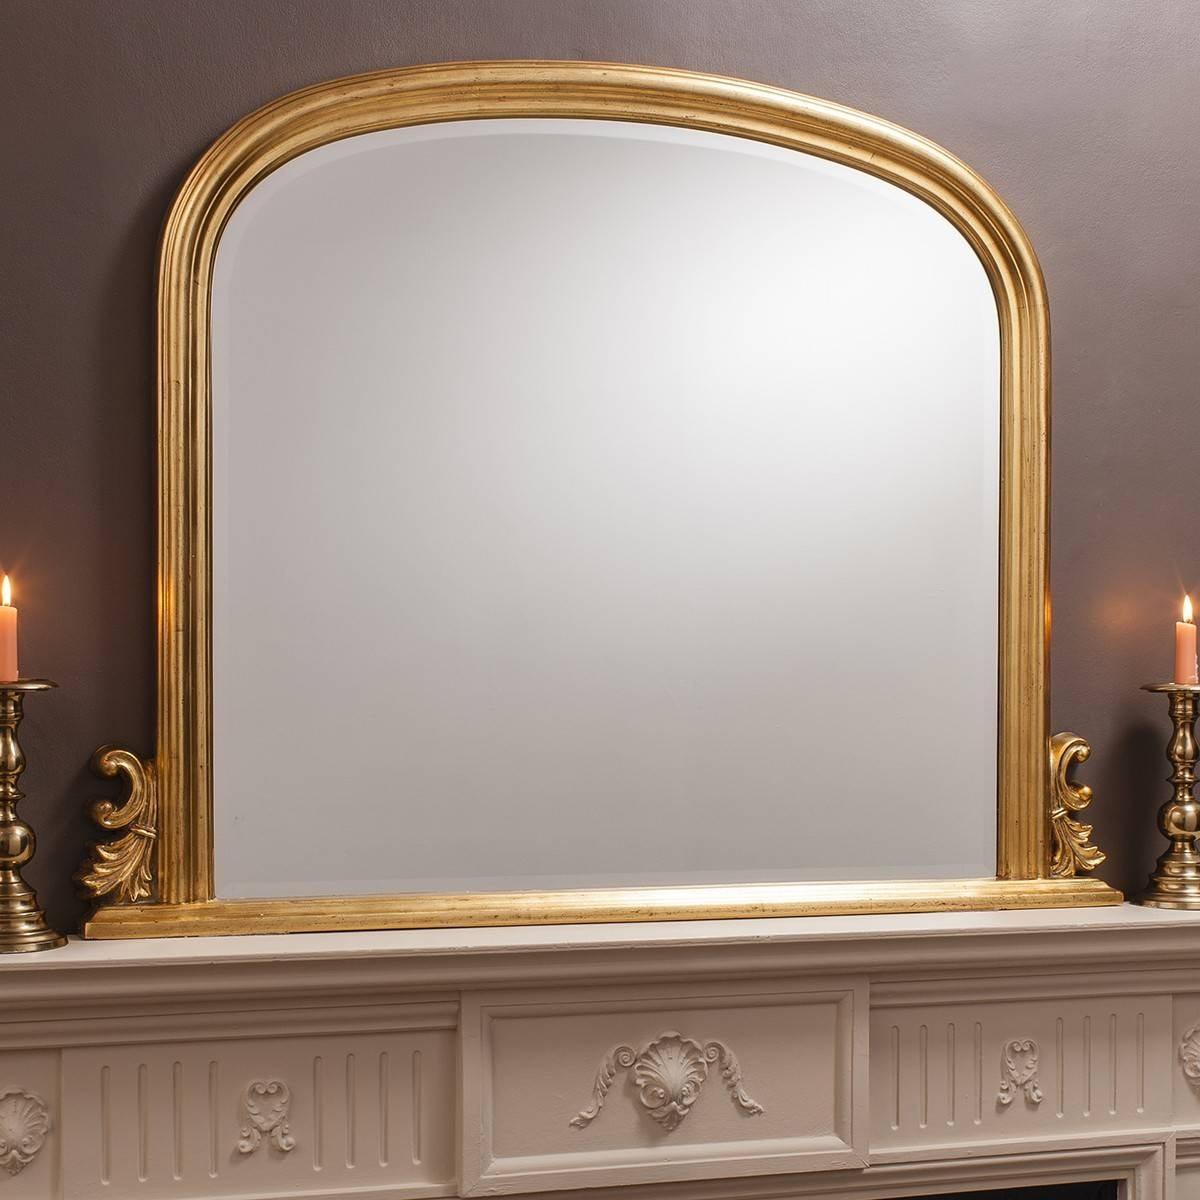 Grace Overmantle Mirror From £249 - Luxury Overmantle Mirrors throughout Overmantle Mirrors (Image 10 of 25)